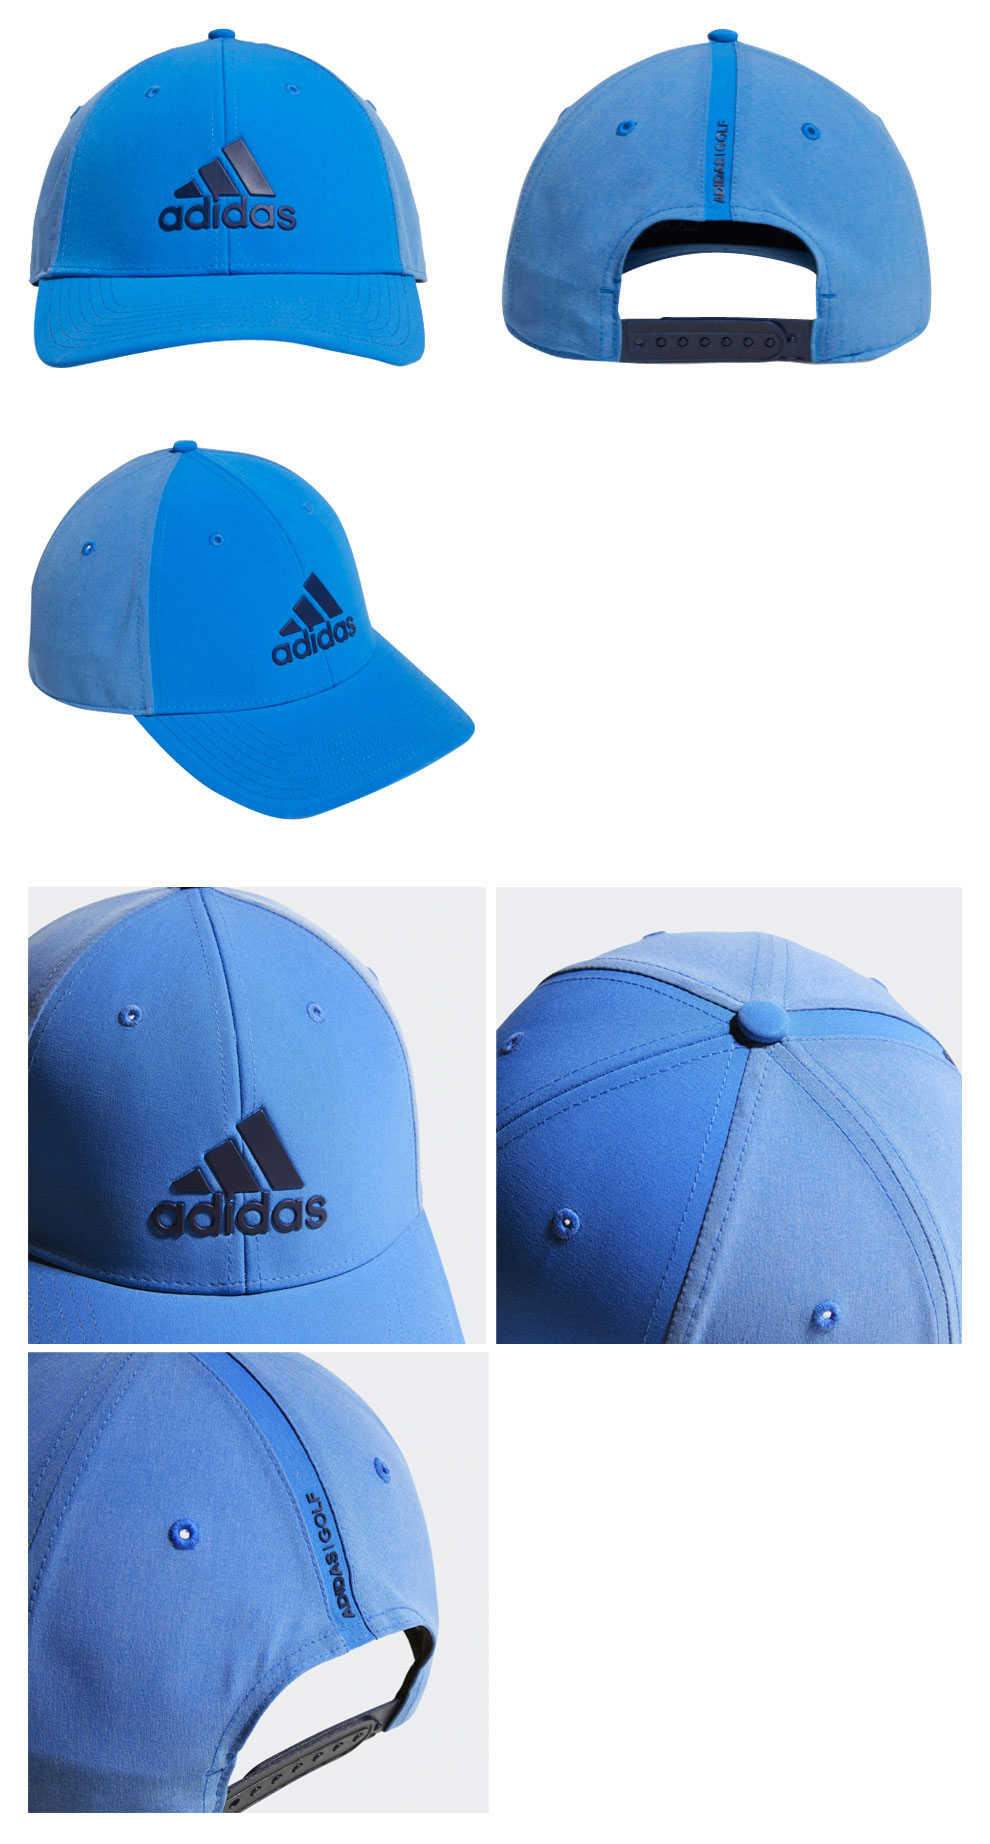 A-STRETCH BADGE OF SPORT TOUR CAP A SWEAT-WICKING CAP BUILT FOR SOFT  COMFORT. This golf cap features moisture-wicking fabric and built-in UV  protection so ... 9e19ace5360b